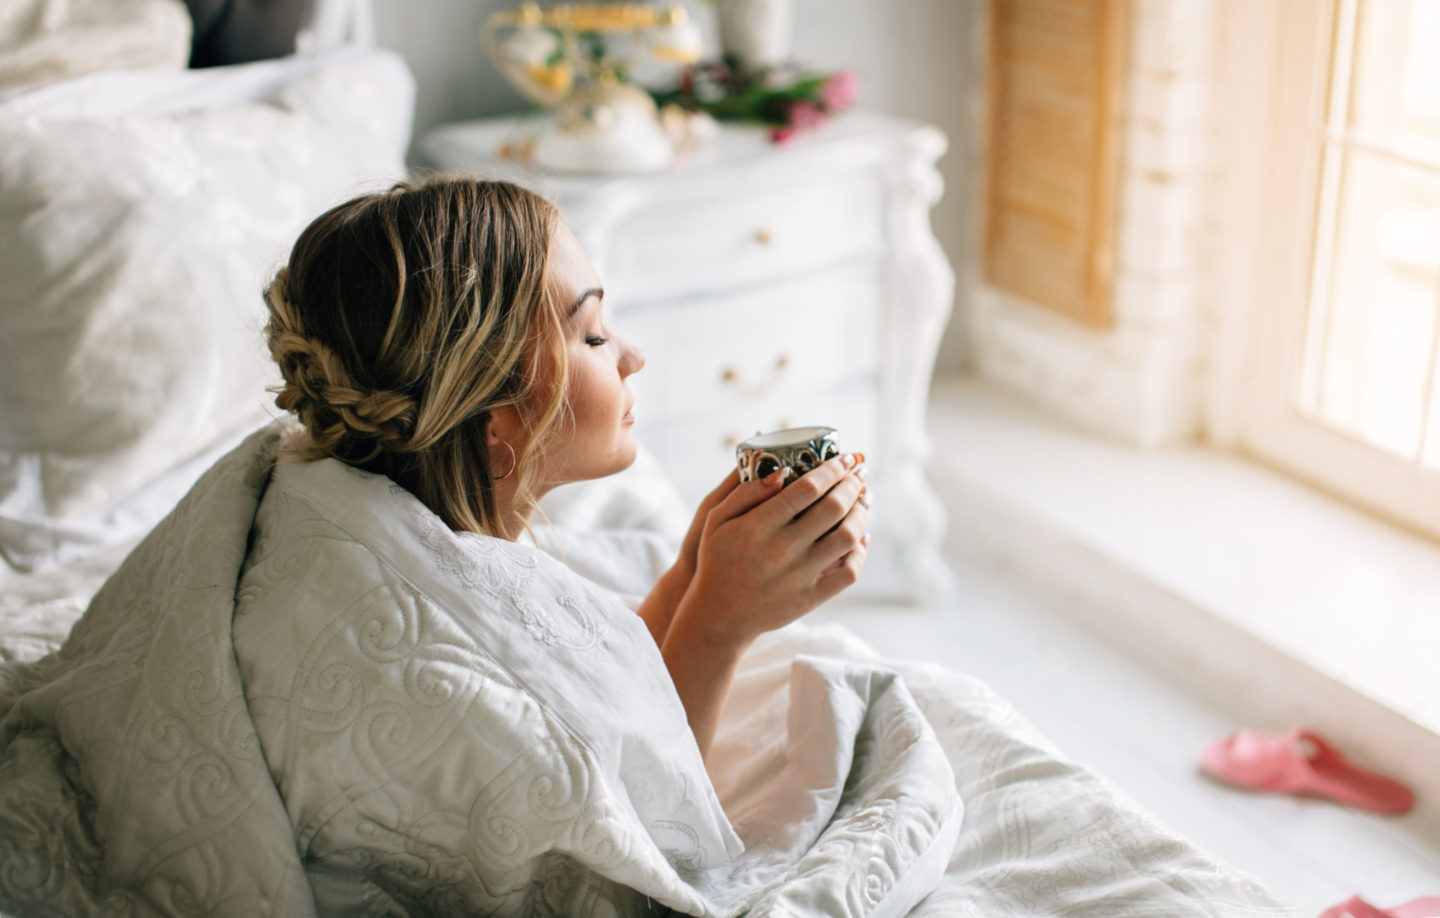 woman drinking coffee in bed.